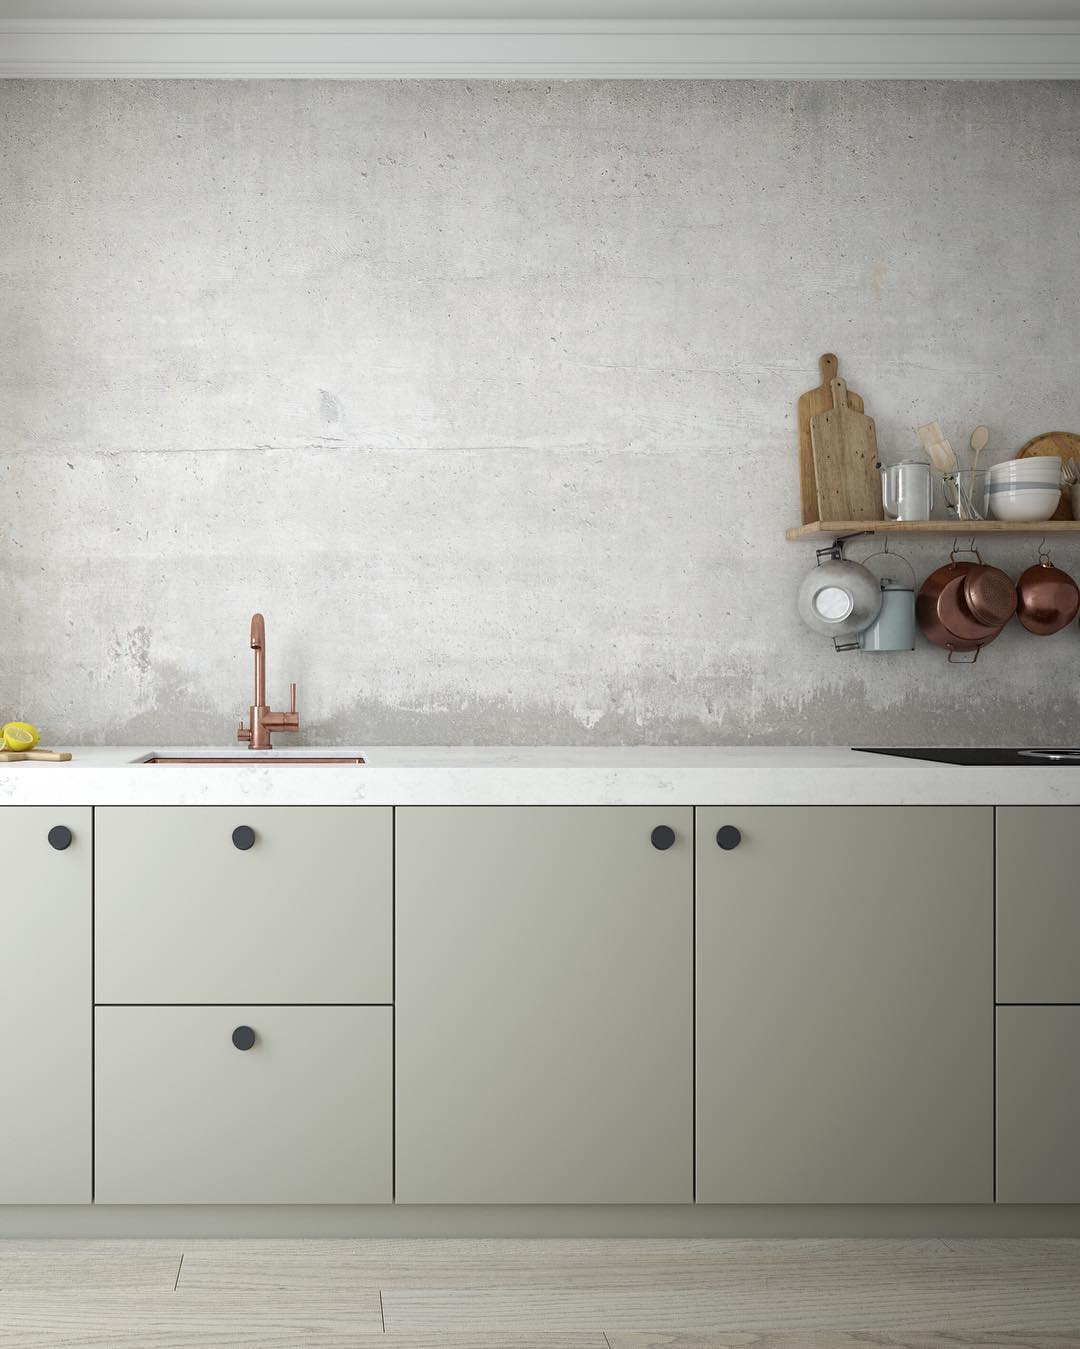 Kitchen Floor Cabinet Combinations: Kitchen Cabinet And Floor Combinations For A Timeless Magazine-worthy Look